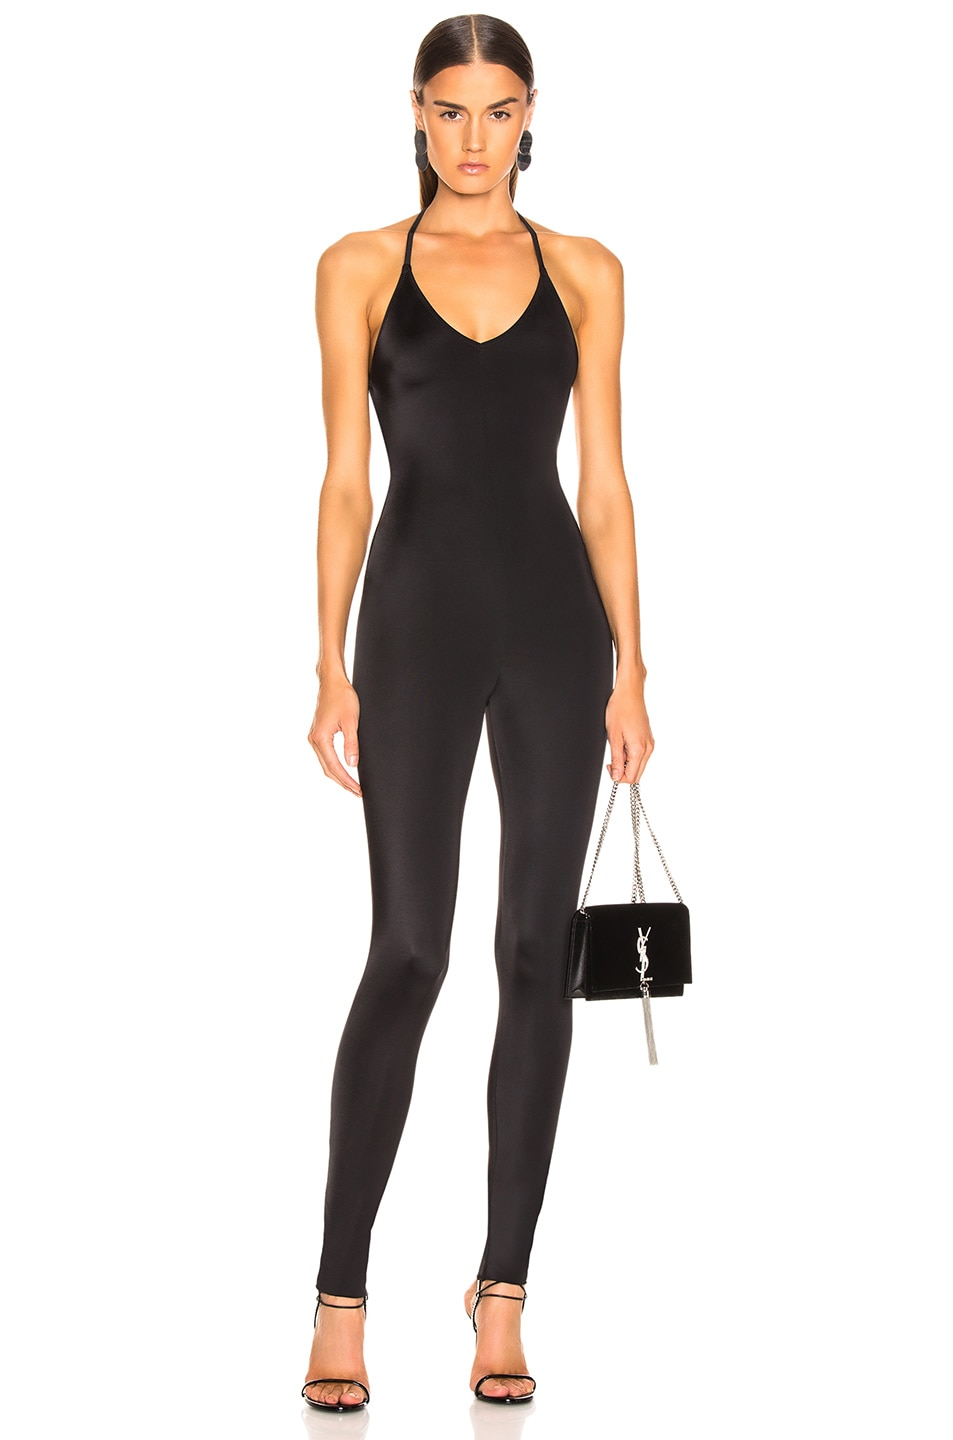 Image 2 of Norma Kamali Low Back Fara Slio Catsuit in Black